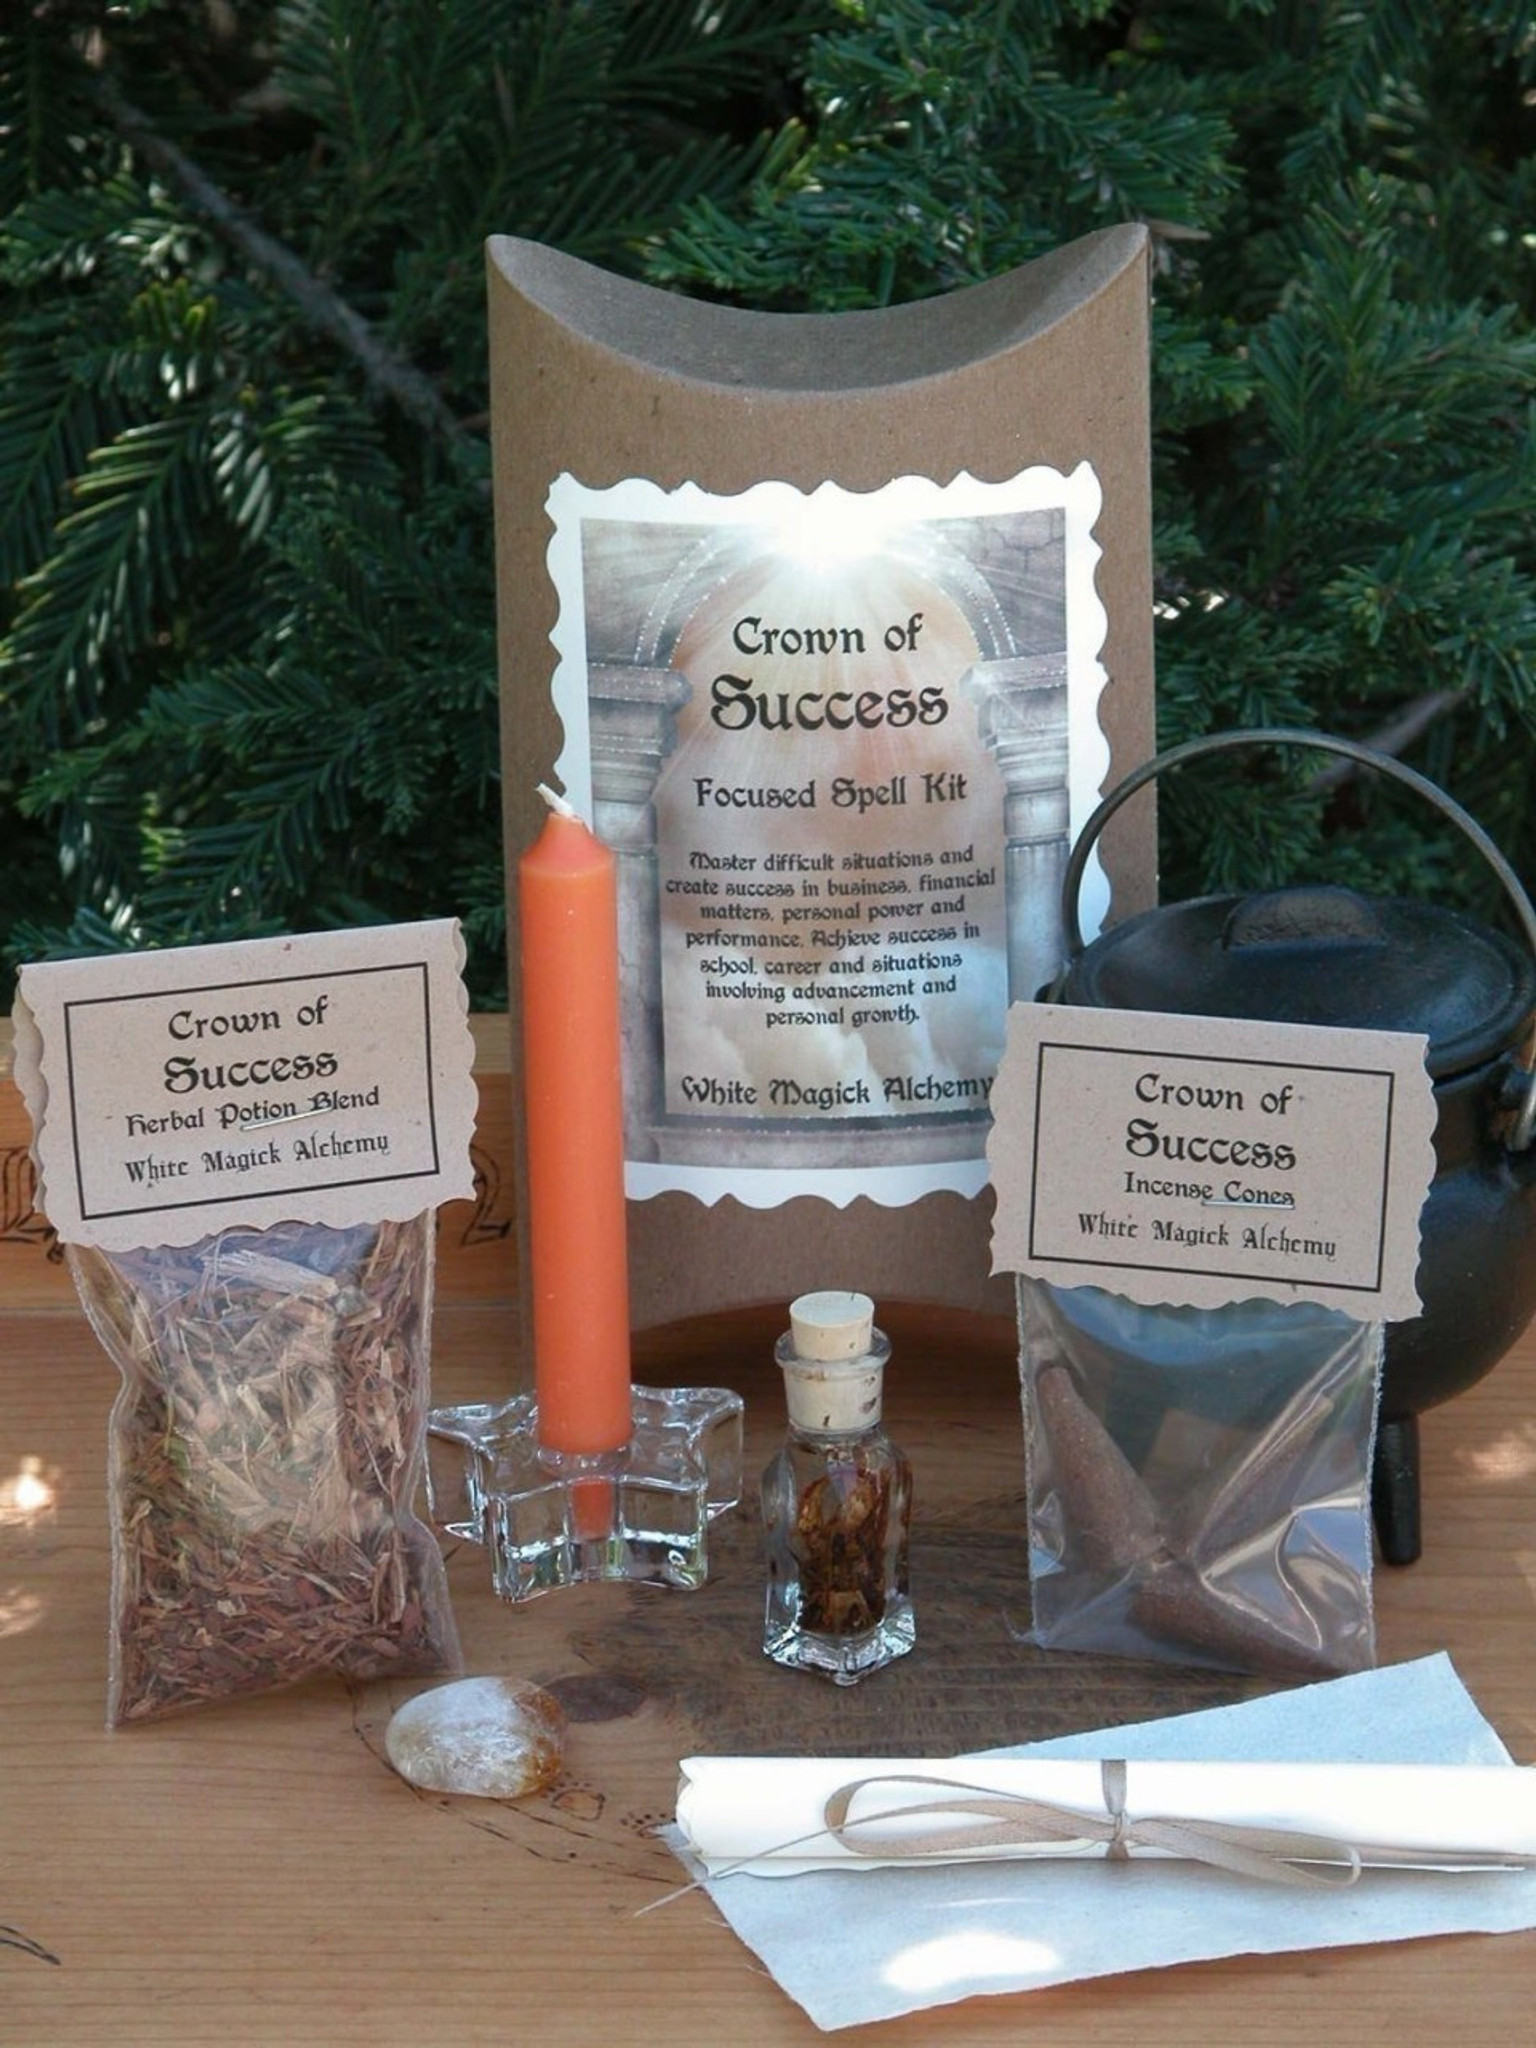 Crown of Success Focused Spell Kit   Business and Financial Success,  Personal Performance, Achievement, Advancement